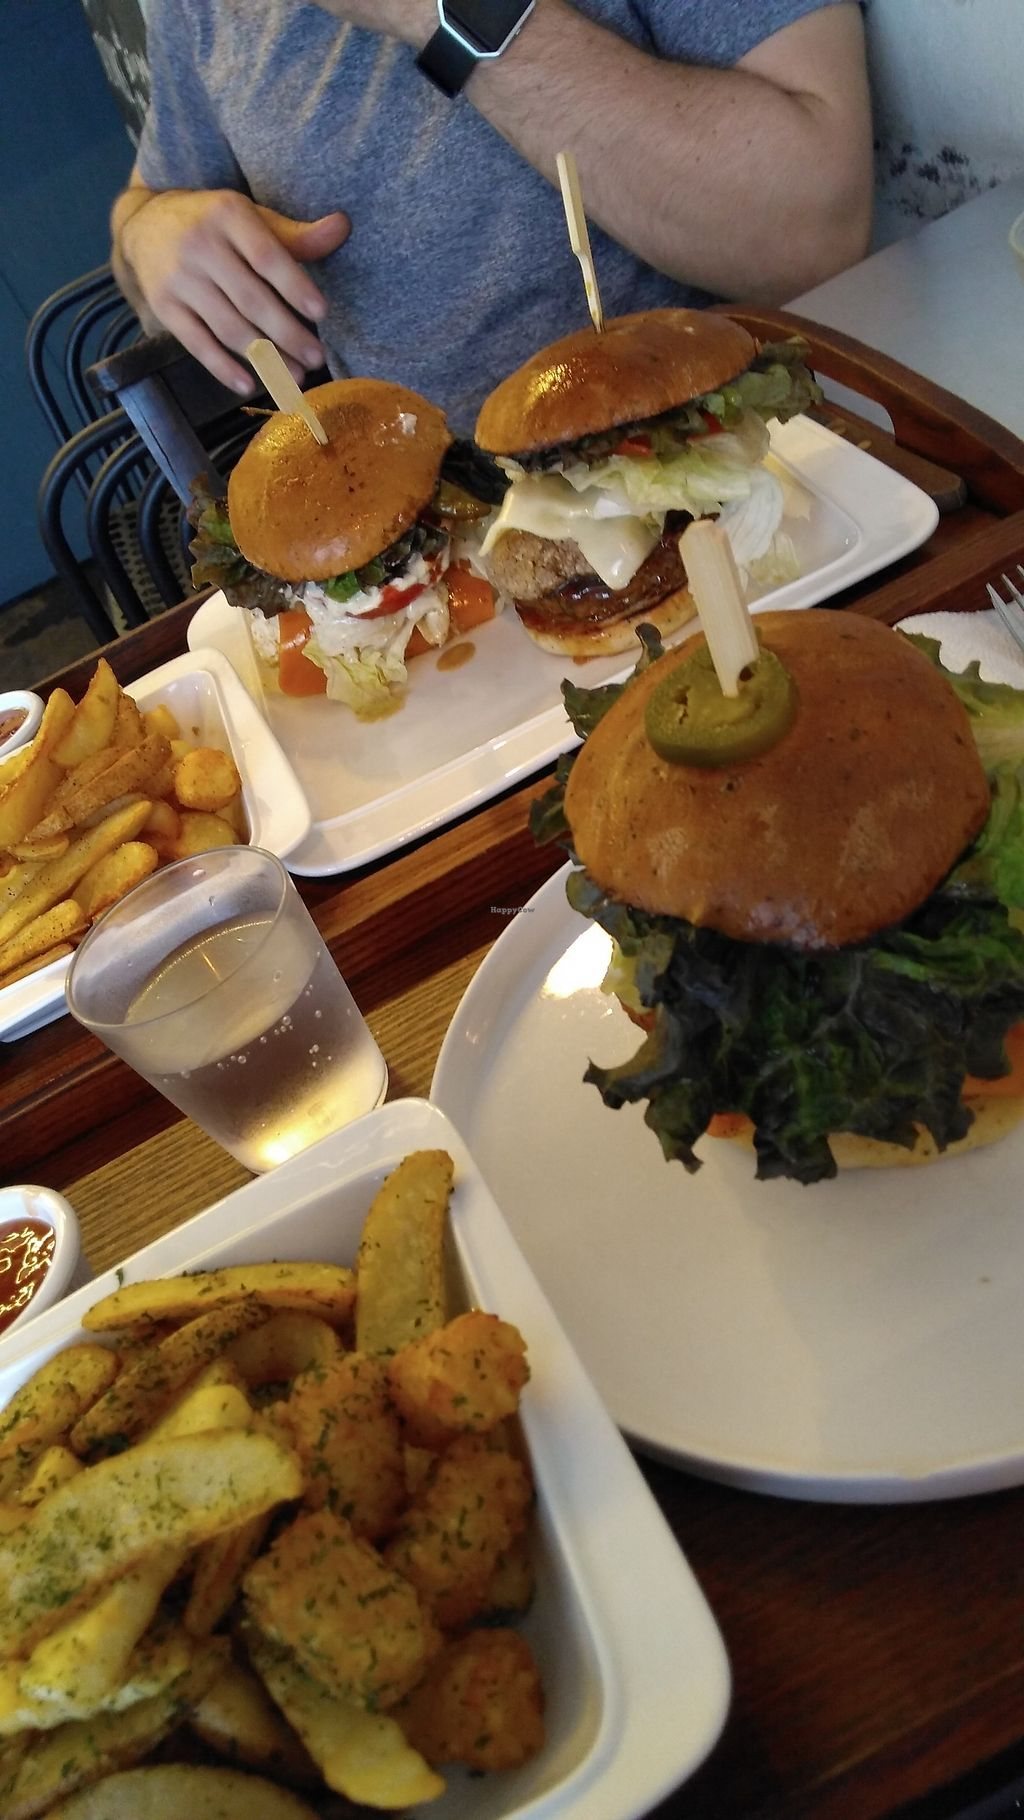 "Photo of Huggers - 허거스  by <a href=""/members/profile/egietz"">egietz</a> <br/>Jalepeno burger, tofu chili burger and chicken burger w/ fries <br/> October 9, 2017  - <a href='/contact/abuse/image/75128/313442'>Report</a>"